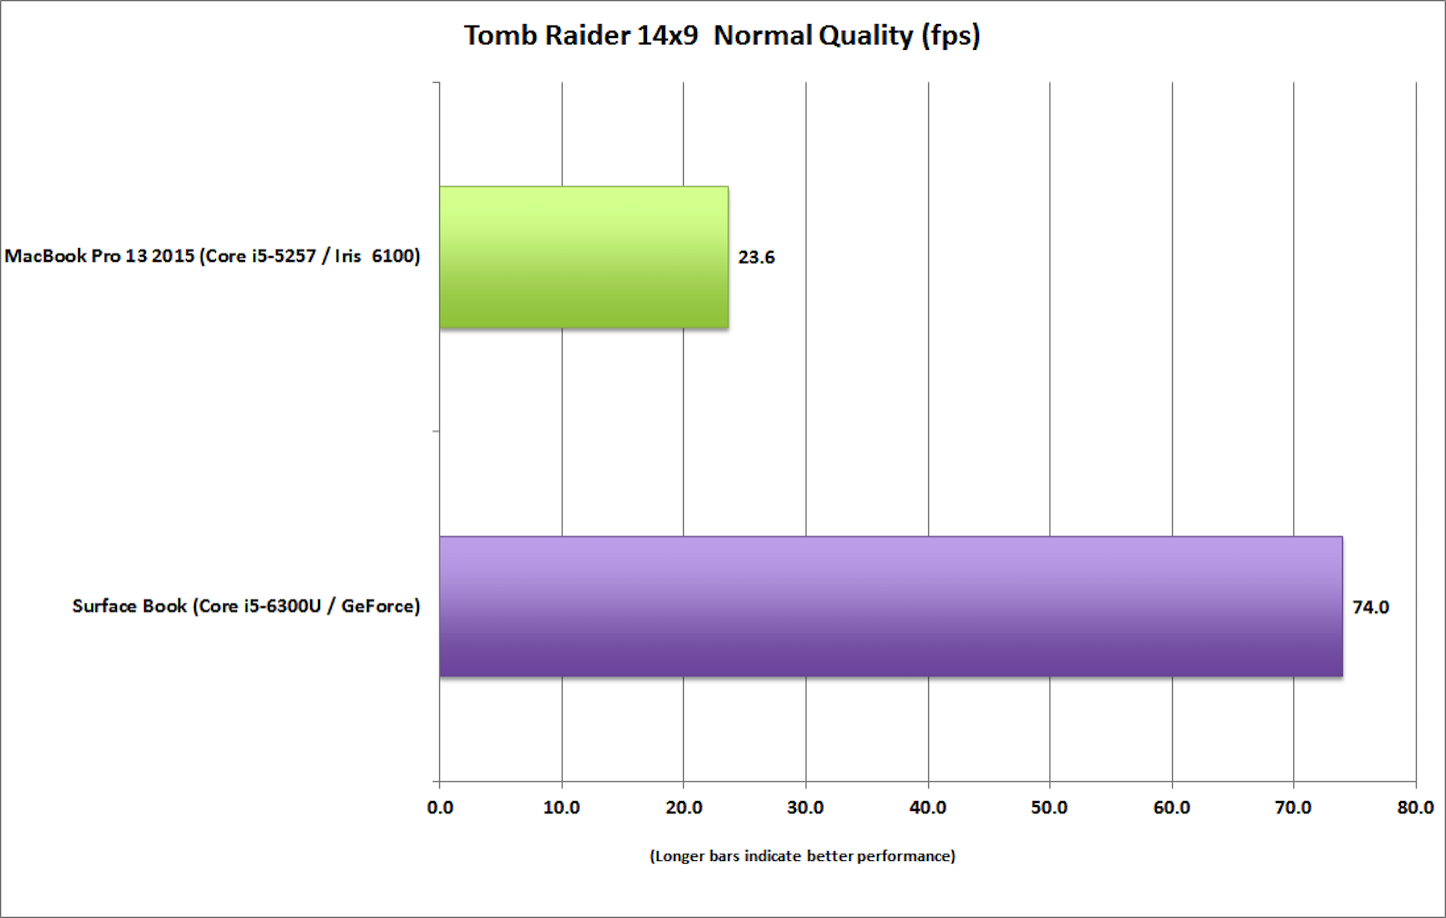 surface_book_vs_macbook_pro_13_tomb_raider_14x9_normal-100623041-orig-1.png